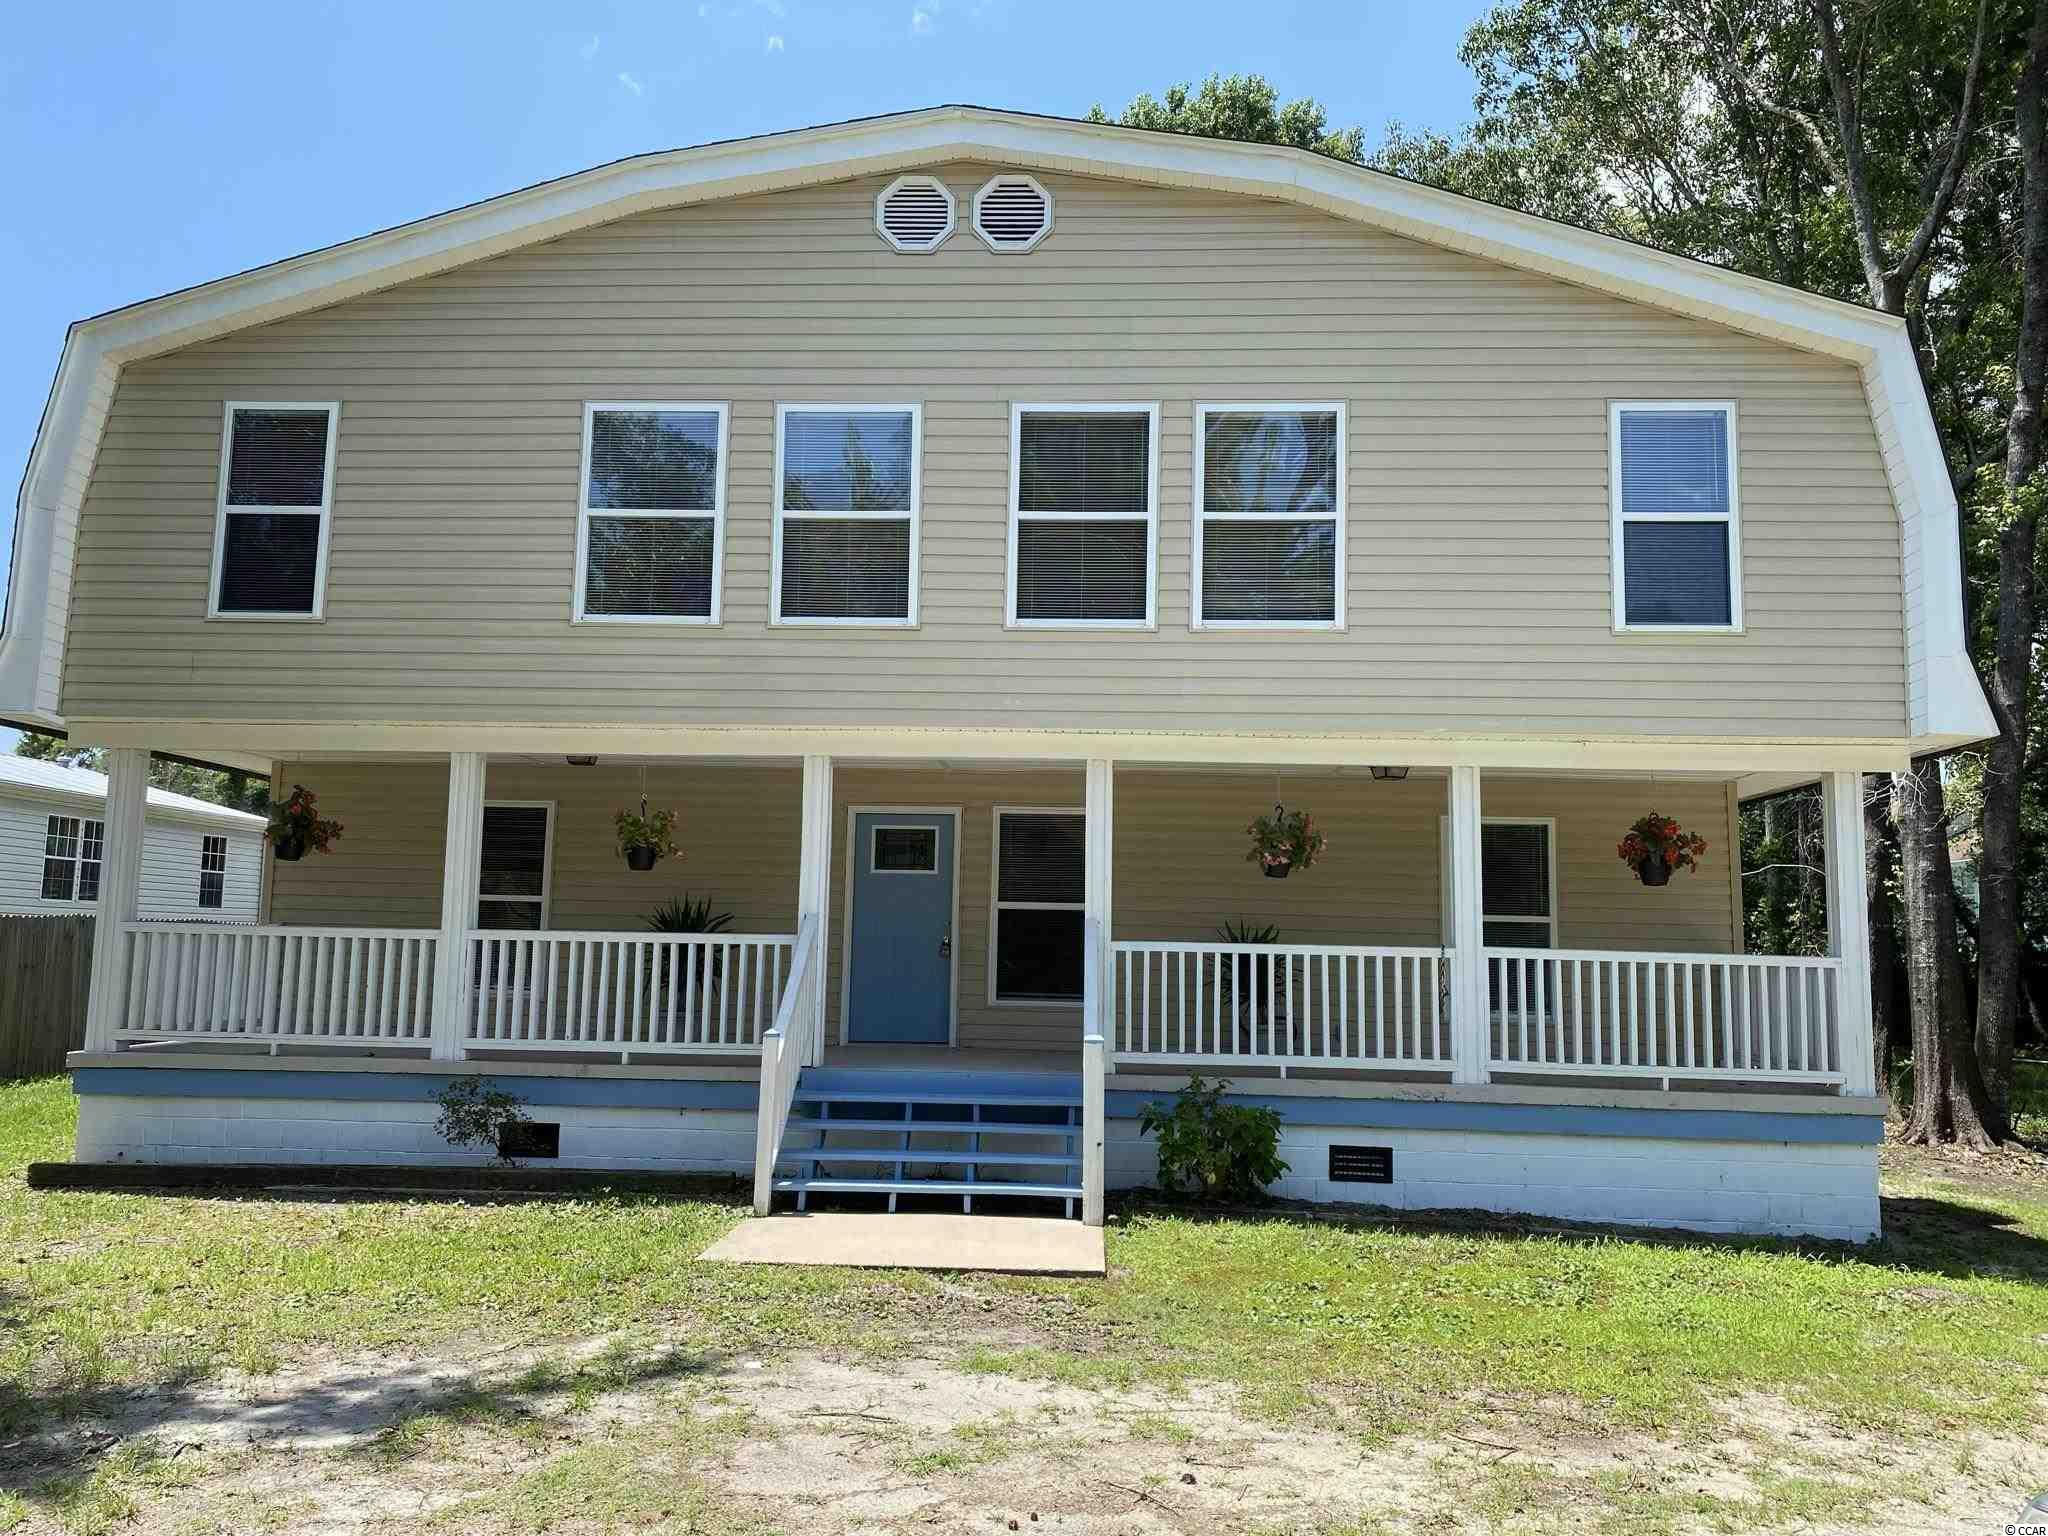 East of Hwy 17 in Garden City Beach.  Home was used to house Exchange students through an international program.  Zoning allows for residential or duplex.  3/4 of a mile to the beach.  First floor provides living room, four bedrooms, two full baths and a full kitchen.  Upstairs left side is comprised of three bedrooms, den/kitchen, full bath.   Upstairs right side is comprised of four bedrooms kitchen/den a one full bath.  There is no homeowners association this property is located in the unincorporated area of Garden City Beach.  The lot is huge with front and rear decks.   Very private backyard.